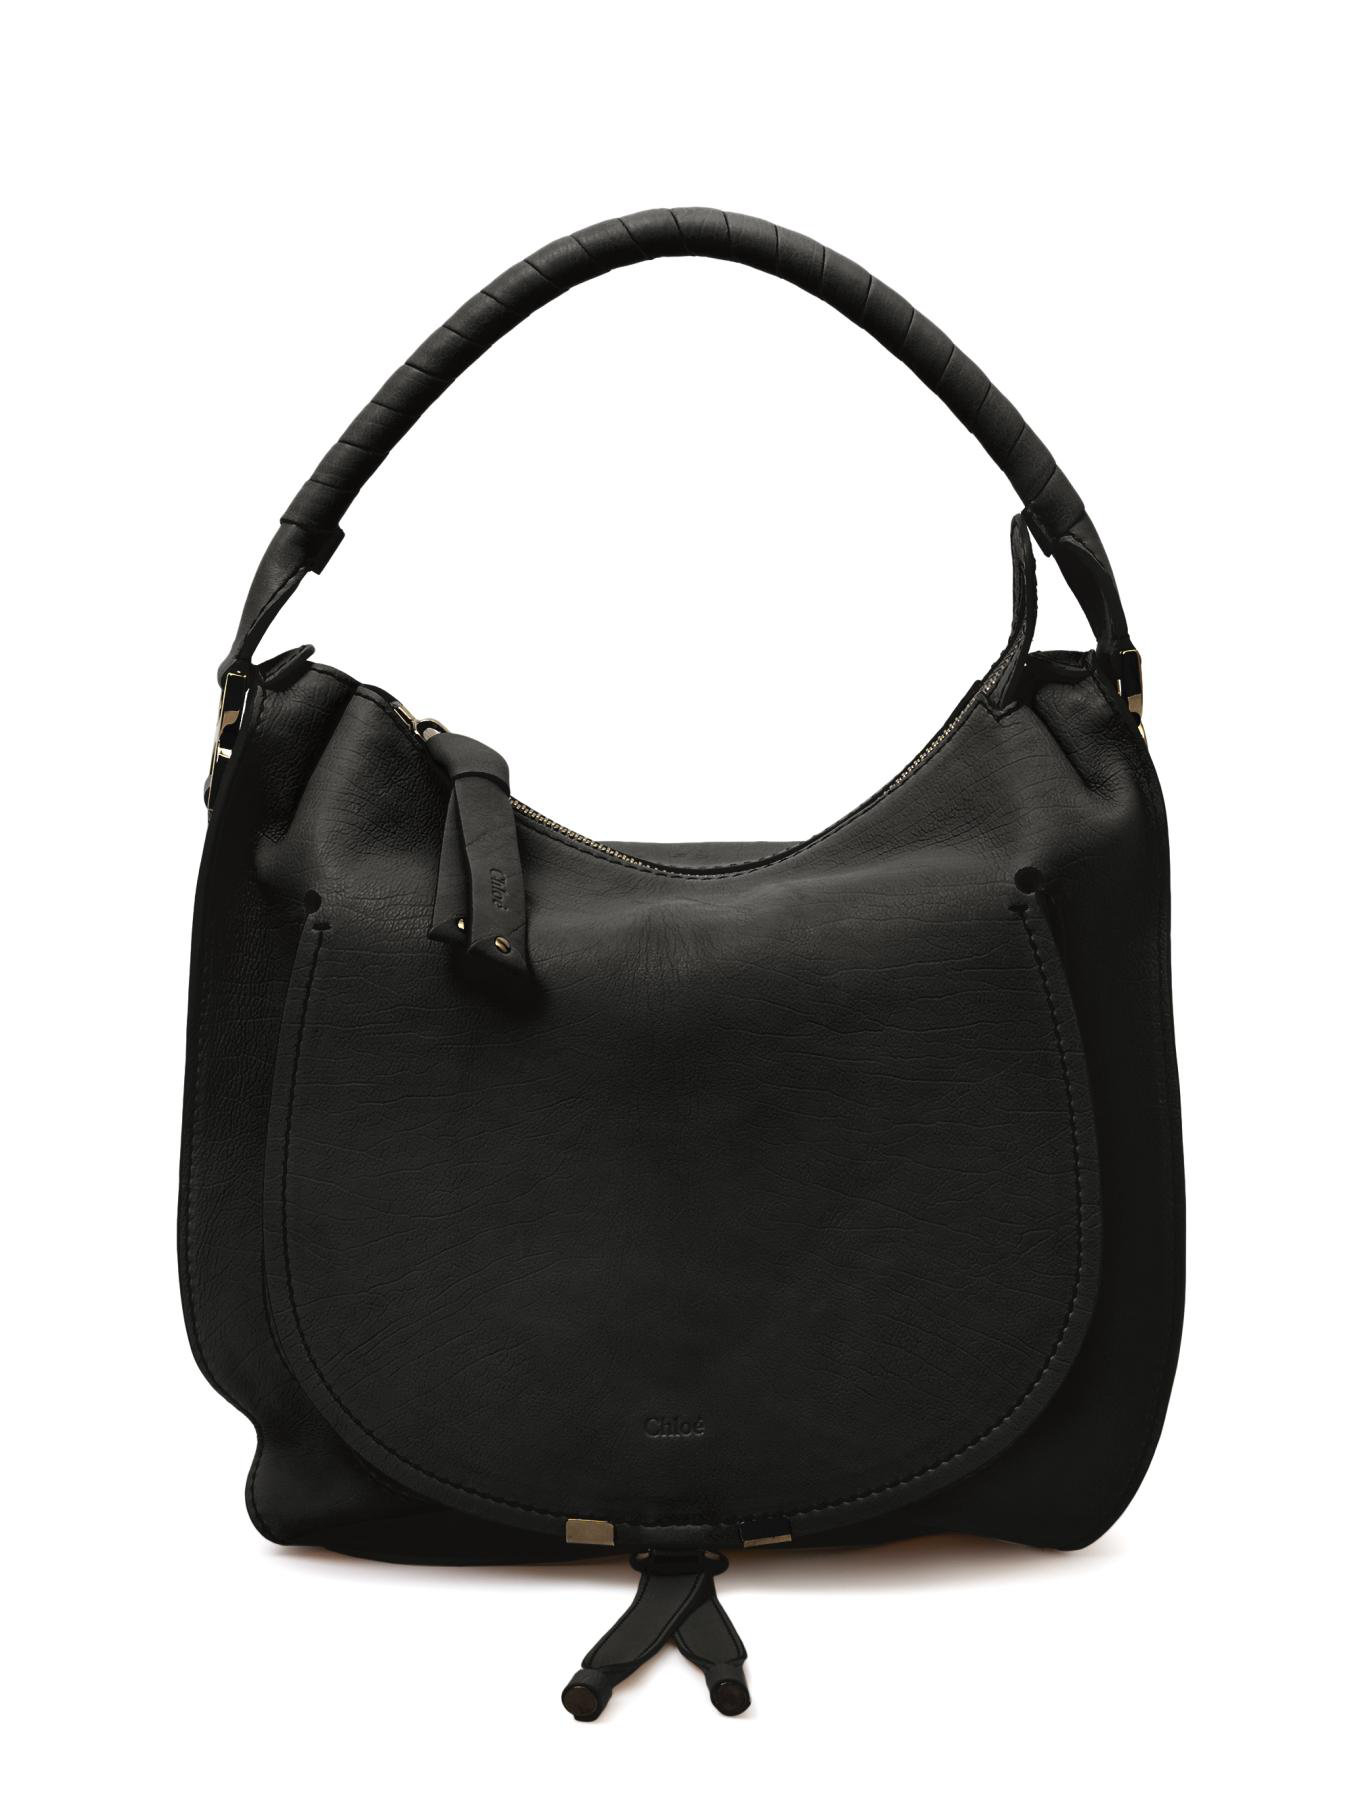 Chlo¨¦ Pure Marcie Hobo Bag in Black | Lyst